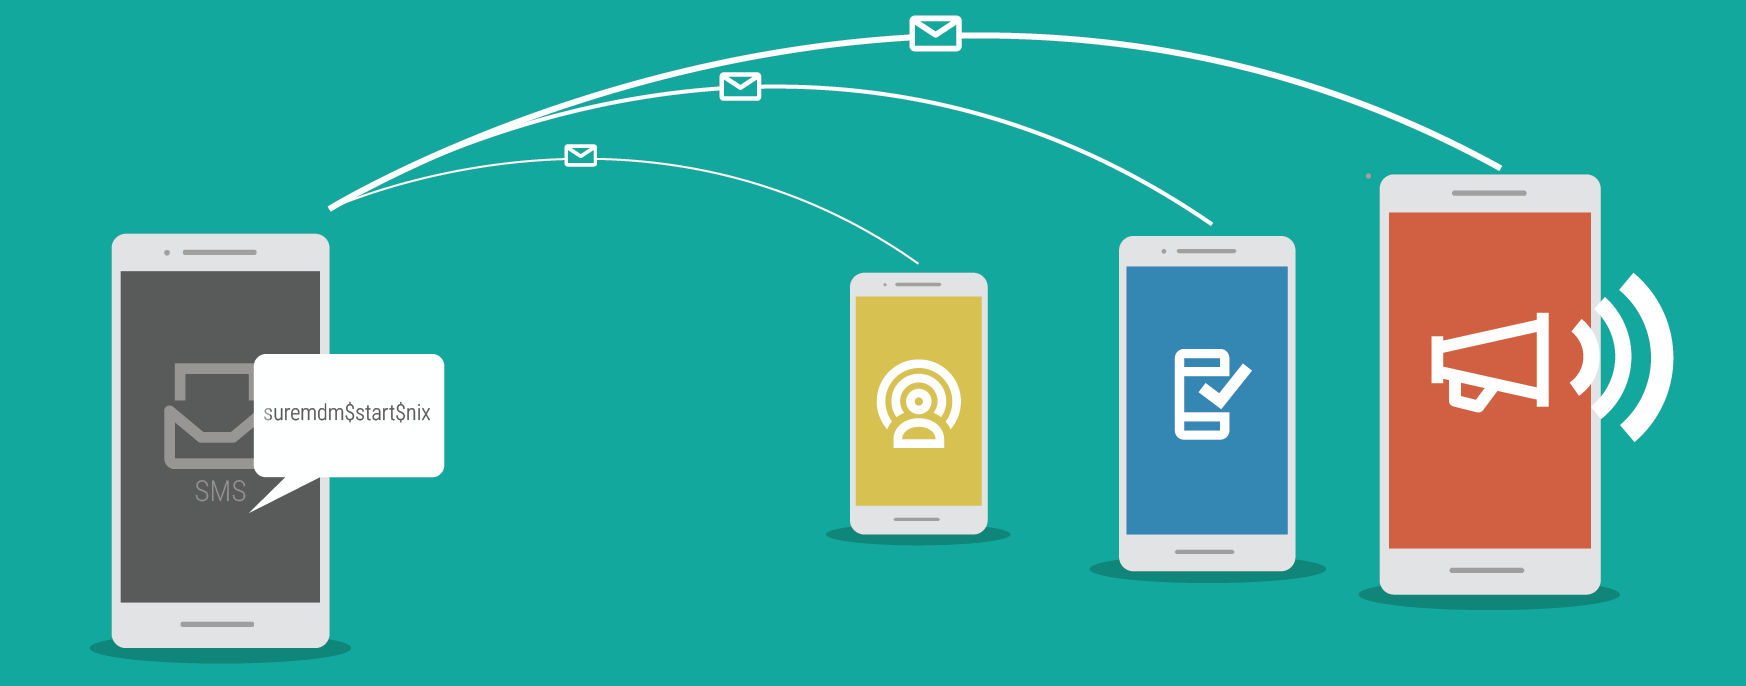 How FoneTracker application works